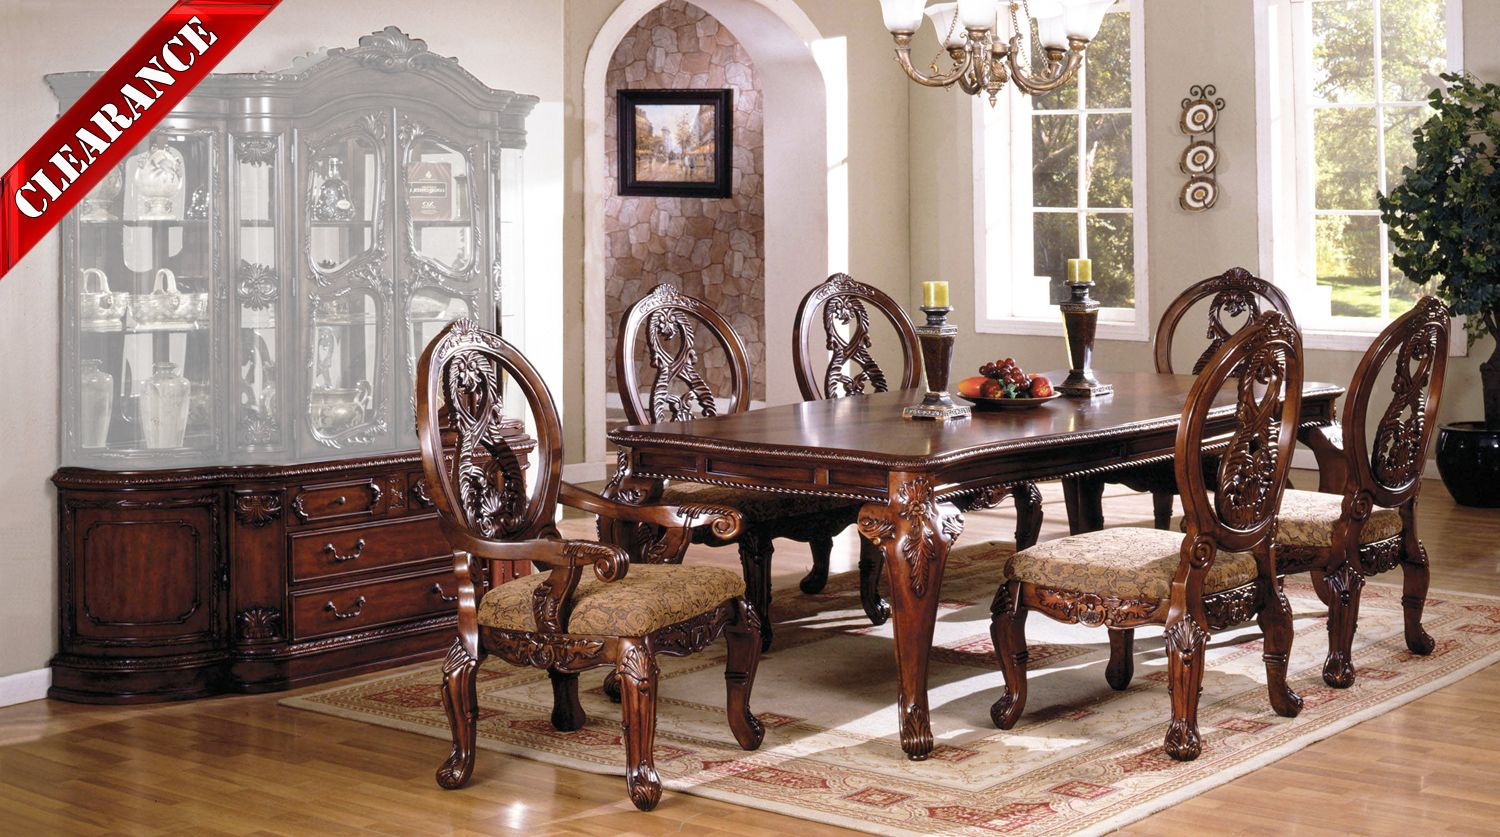 Details About Tuscany Ii Elegant Antique Cherry 8 Pc Formal Dining Room Set  W/ Buffet Inside Buffets With Cherry Finish (Photo 28 of 30)